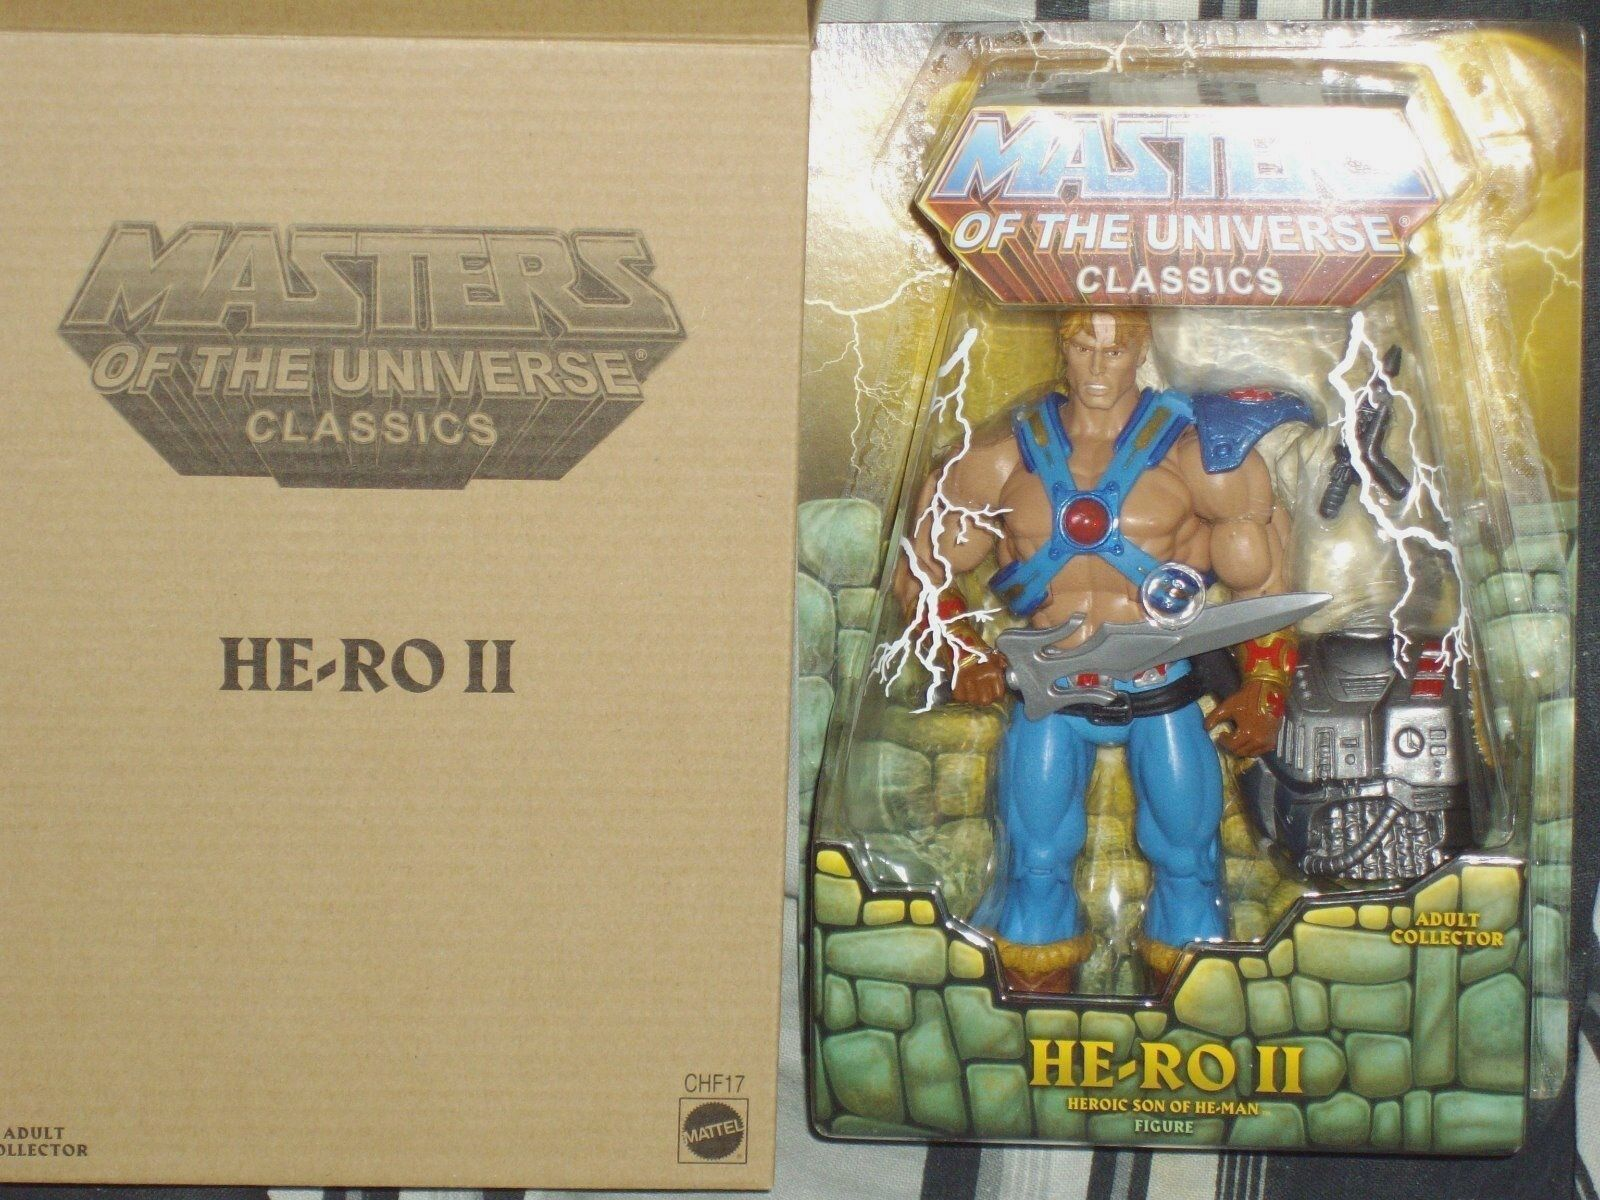 New Masters of the Universe Classics He-Ro II Son of He-Man figure Dare MOTUC LE